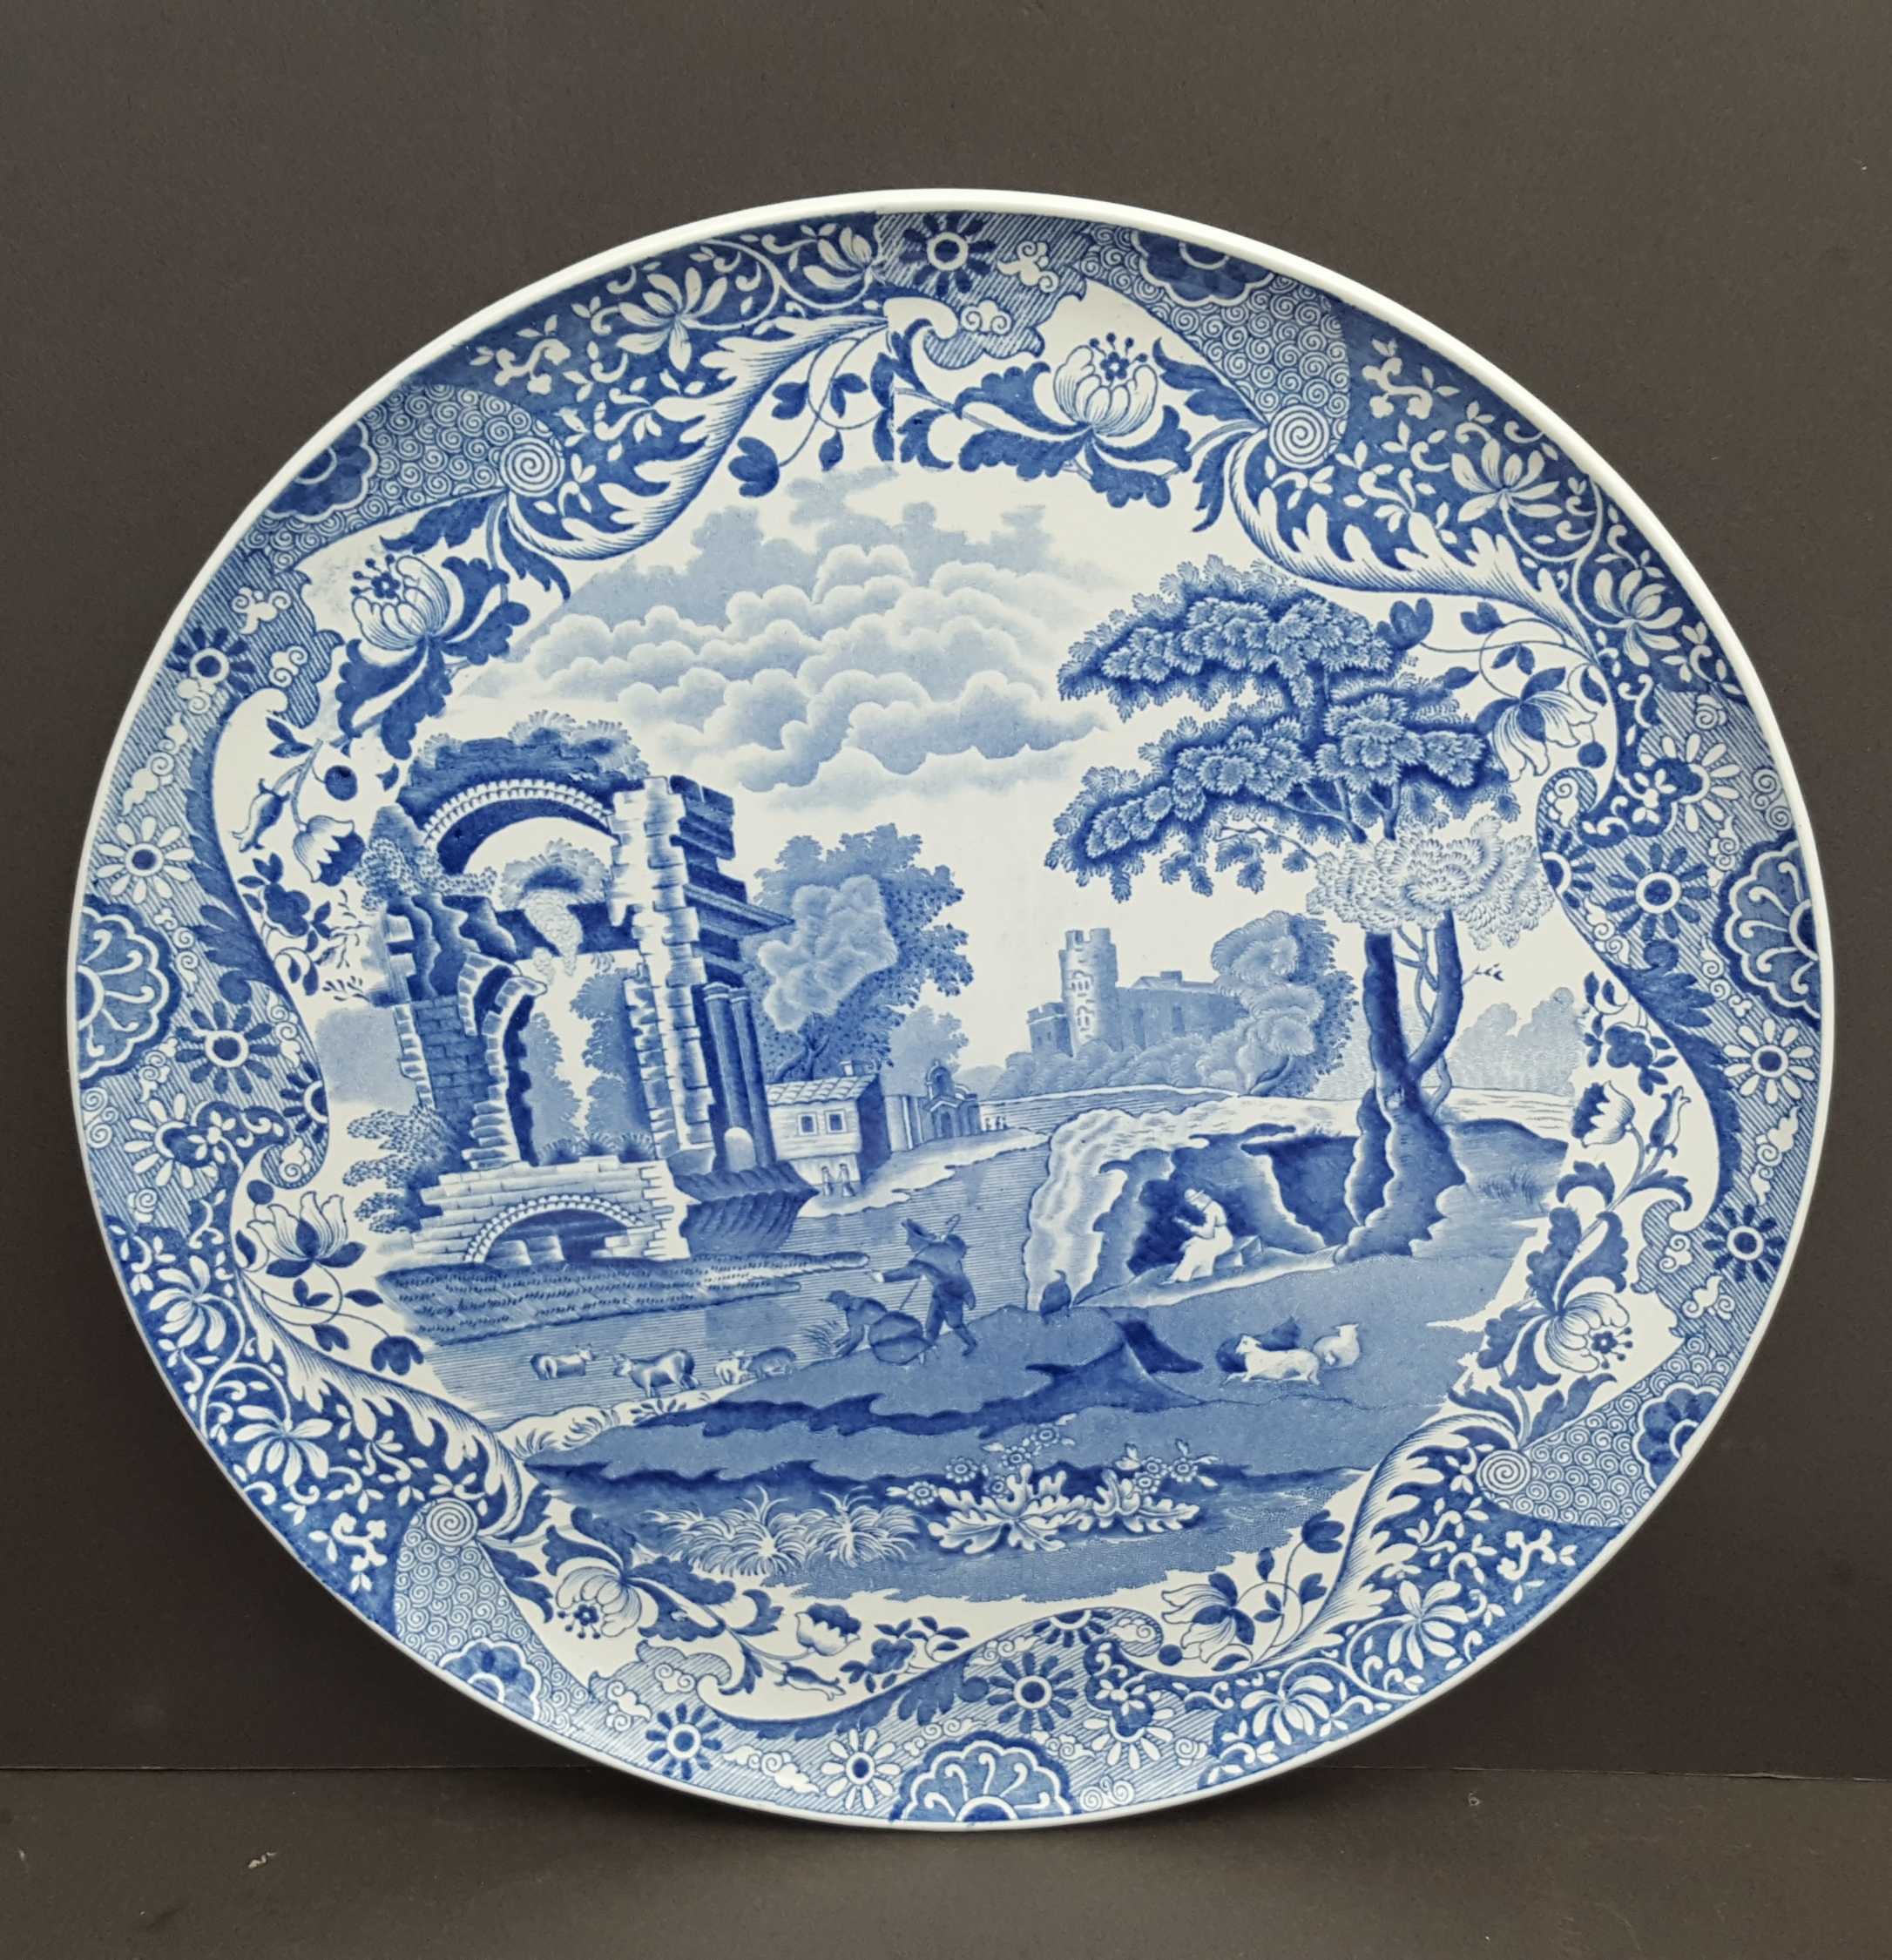 Vintage Collection 14 Collectable Plates Includes Victorian Spode Blue & White Birds & Fish - Image 3 of 5